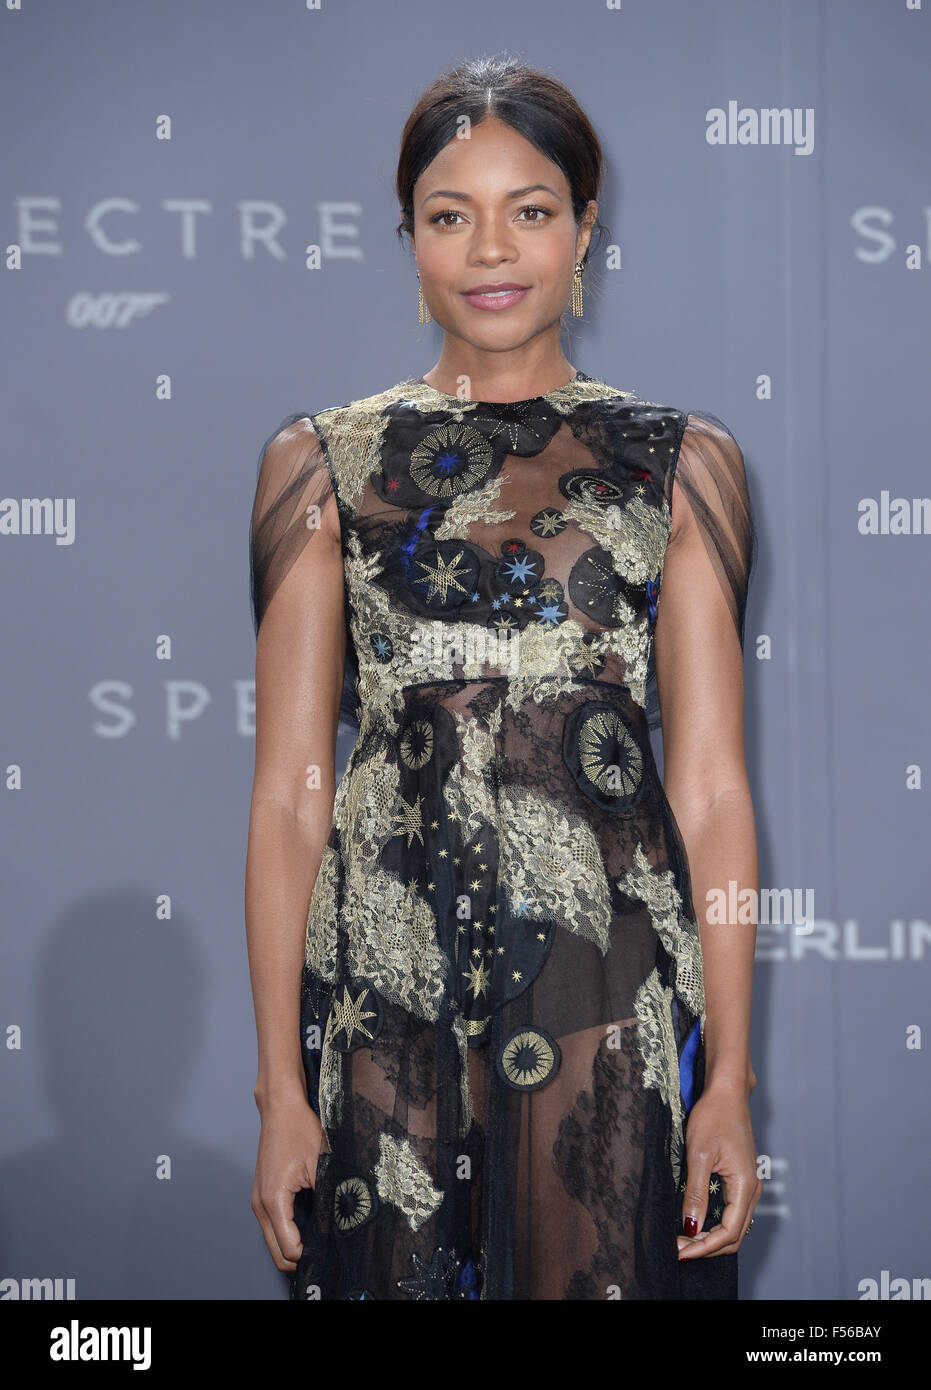 Actress Naomie Harris poses at Potsdamer Platz in Berlin, Germany, for German premiere of the new James Bond film - Stock Image